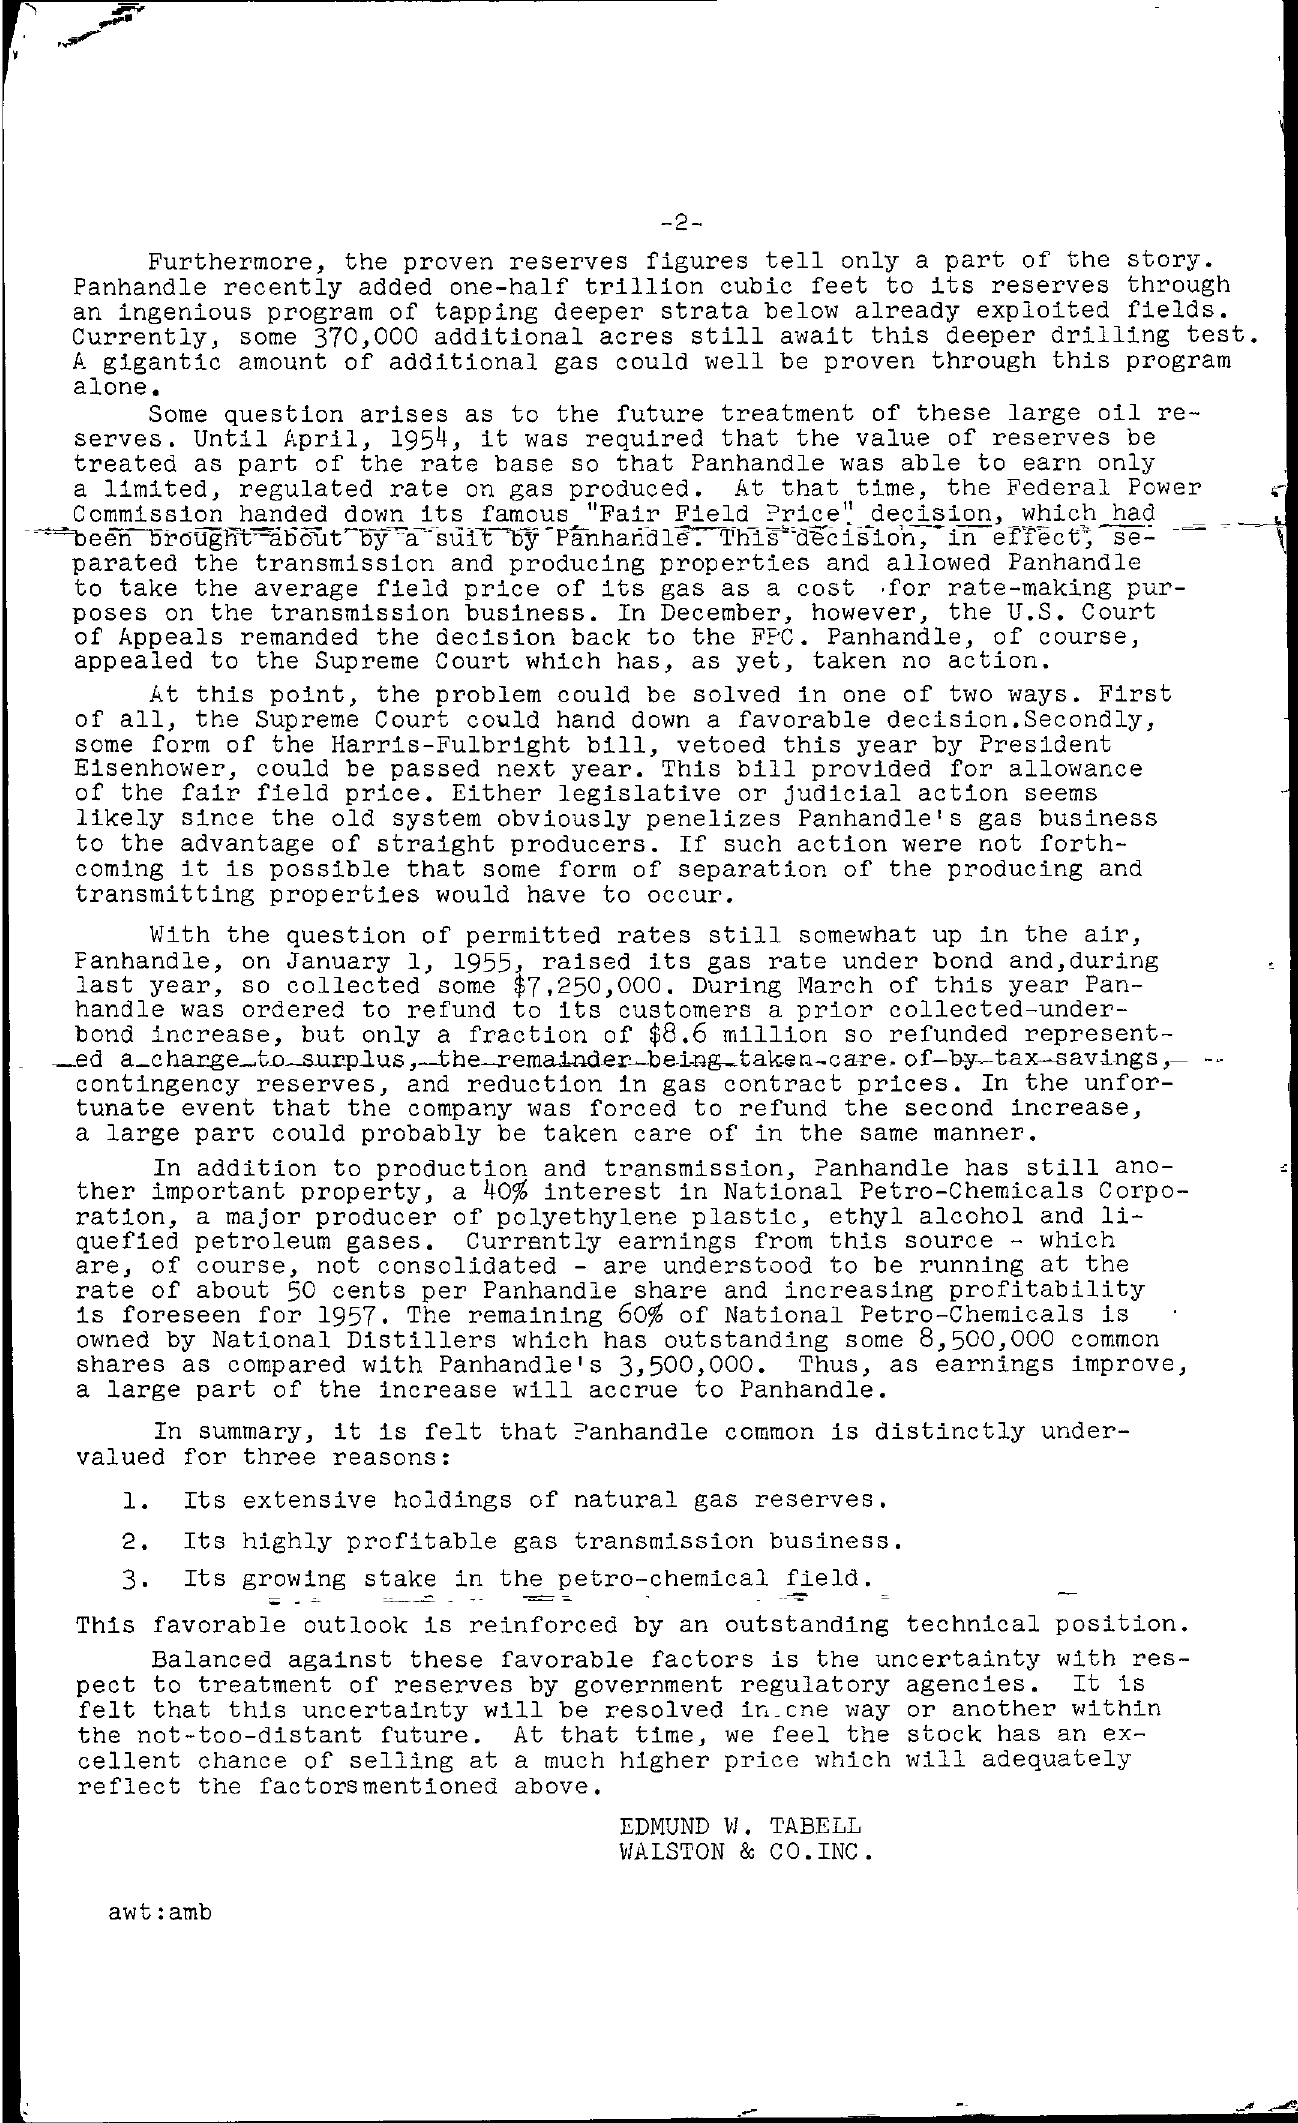 Tabell's Market Letter - June 29, 1956 page 2